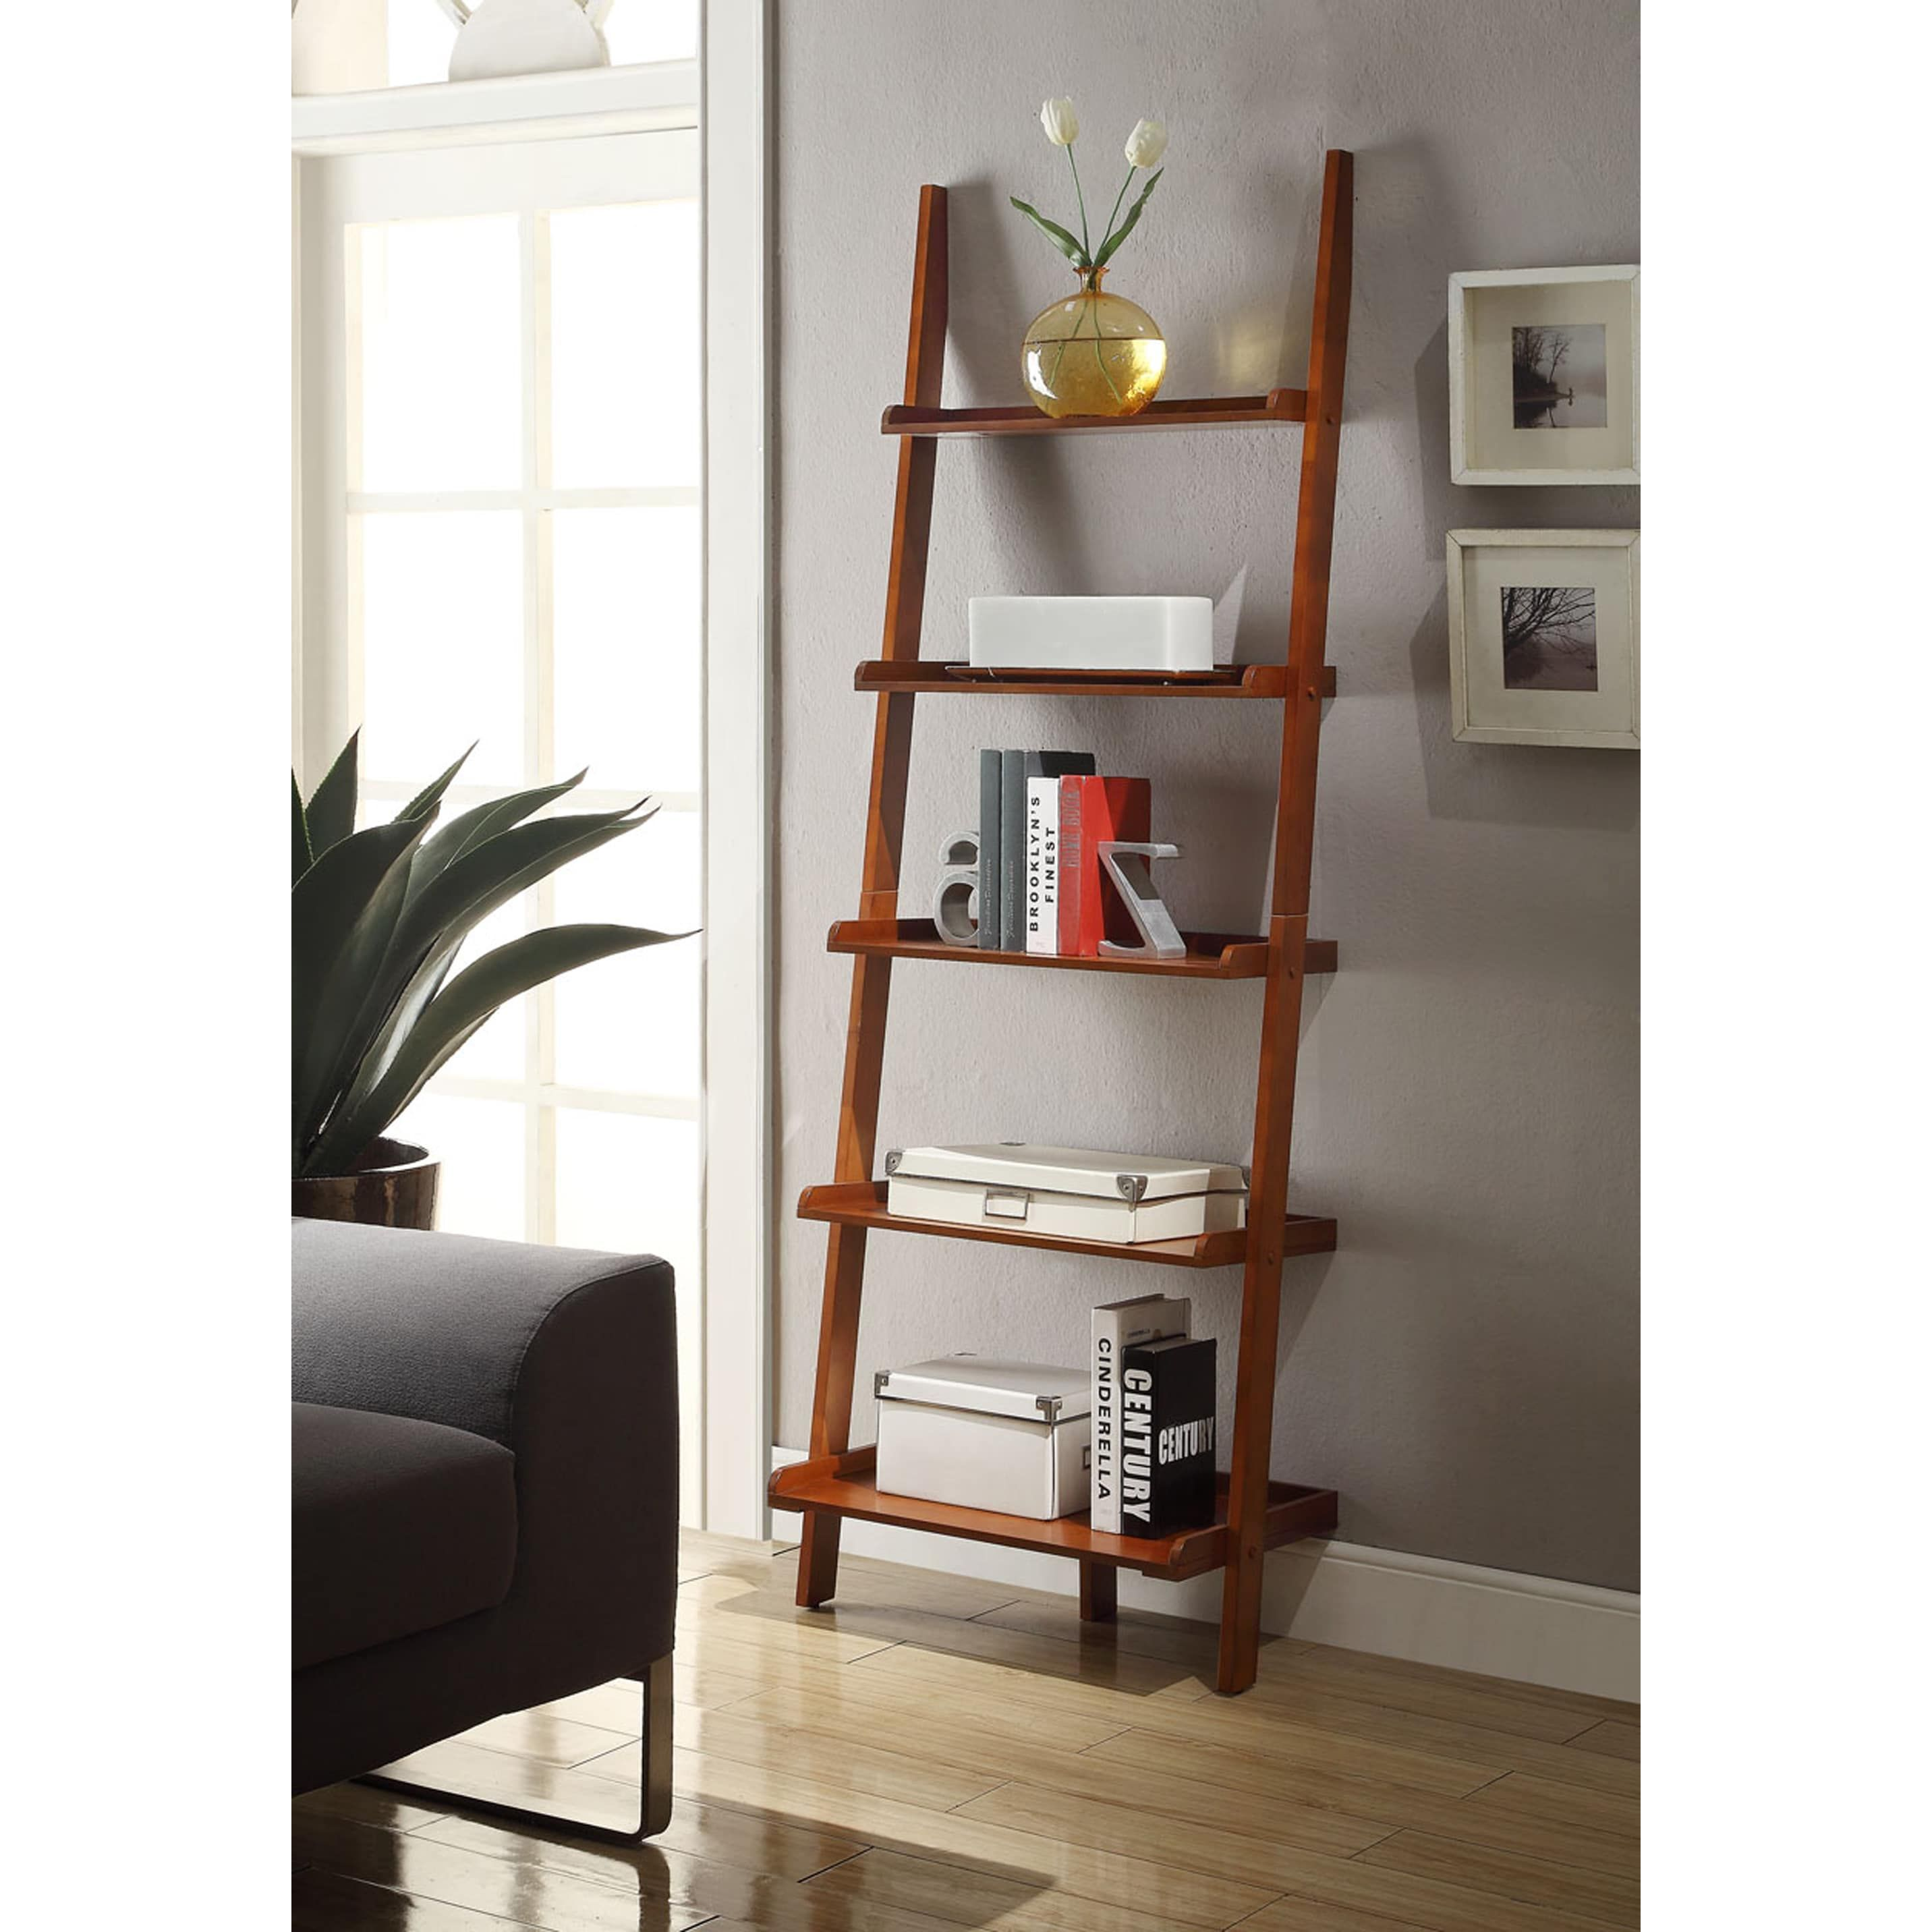 Porch & Den Bywater Villere Ladder Bookshelf  Free Shipping